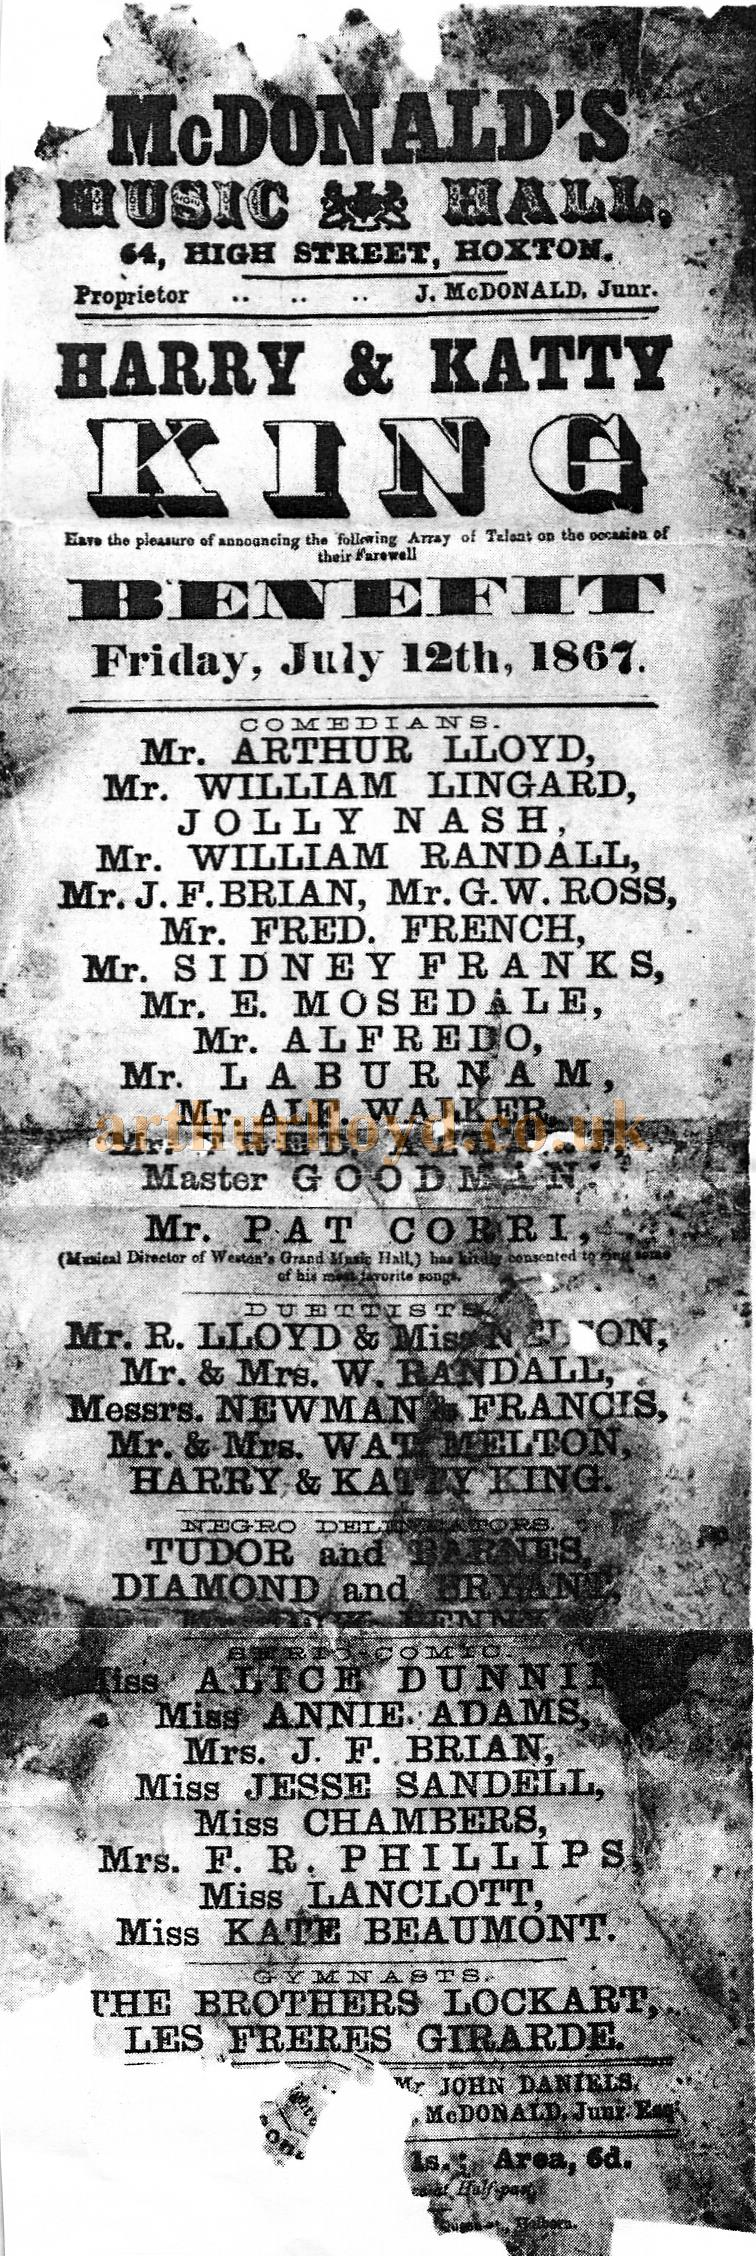 A McDonald's Music Hall Bill with Arthur Lloyd, his wife Katty King, and her brother Harry, and Arthur's brother Robert Lloyd all on the Bill together, for a benefit performance in aid of Harry and Katty King on the 12th of July 1867 - Courtesy Peter Charlton.